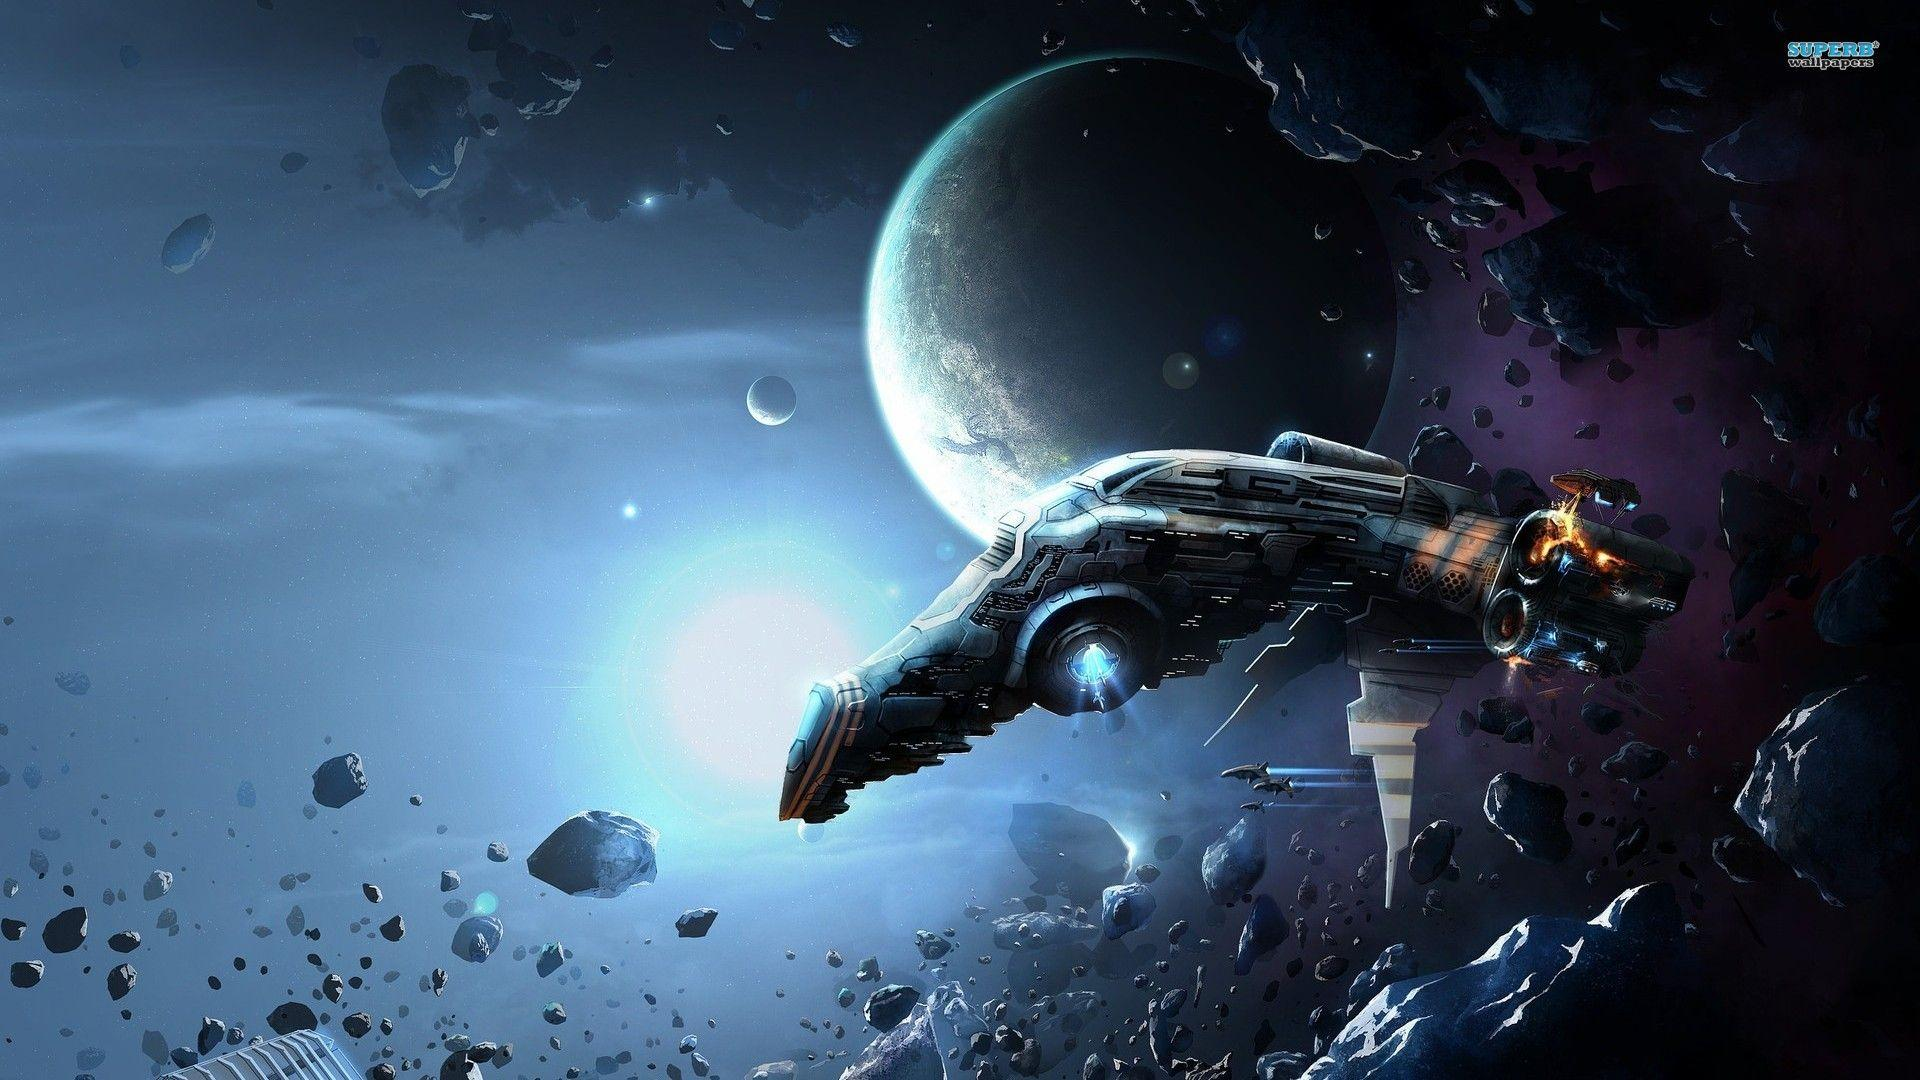 Fantasy Spaceship Wallpaper Wallpapers 1920x1080PX ~ Wallpaper Hd ...